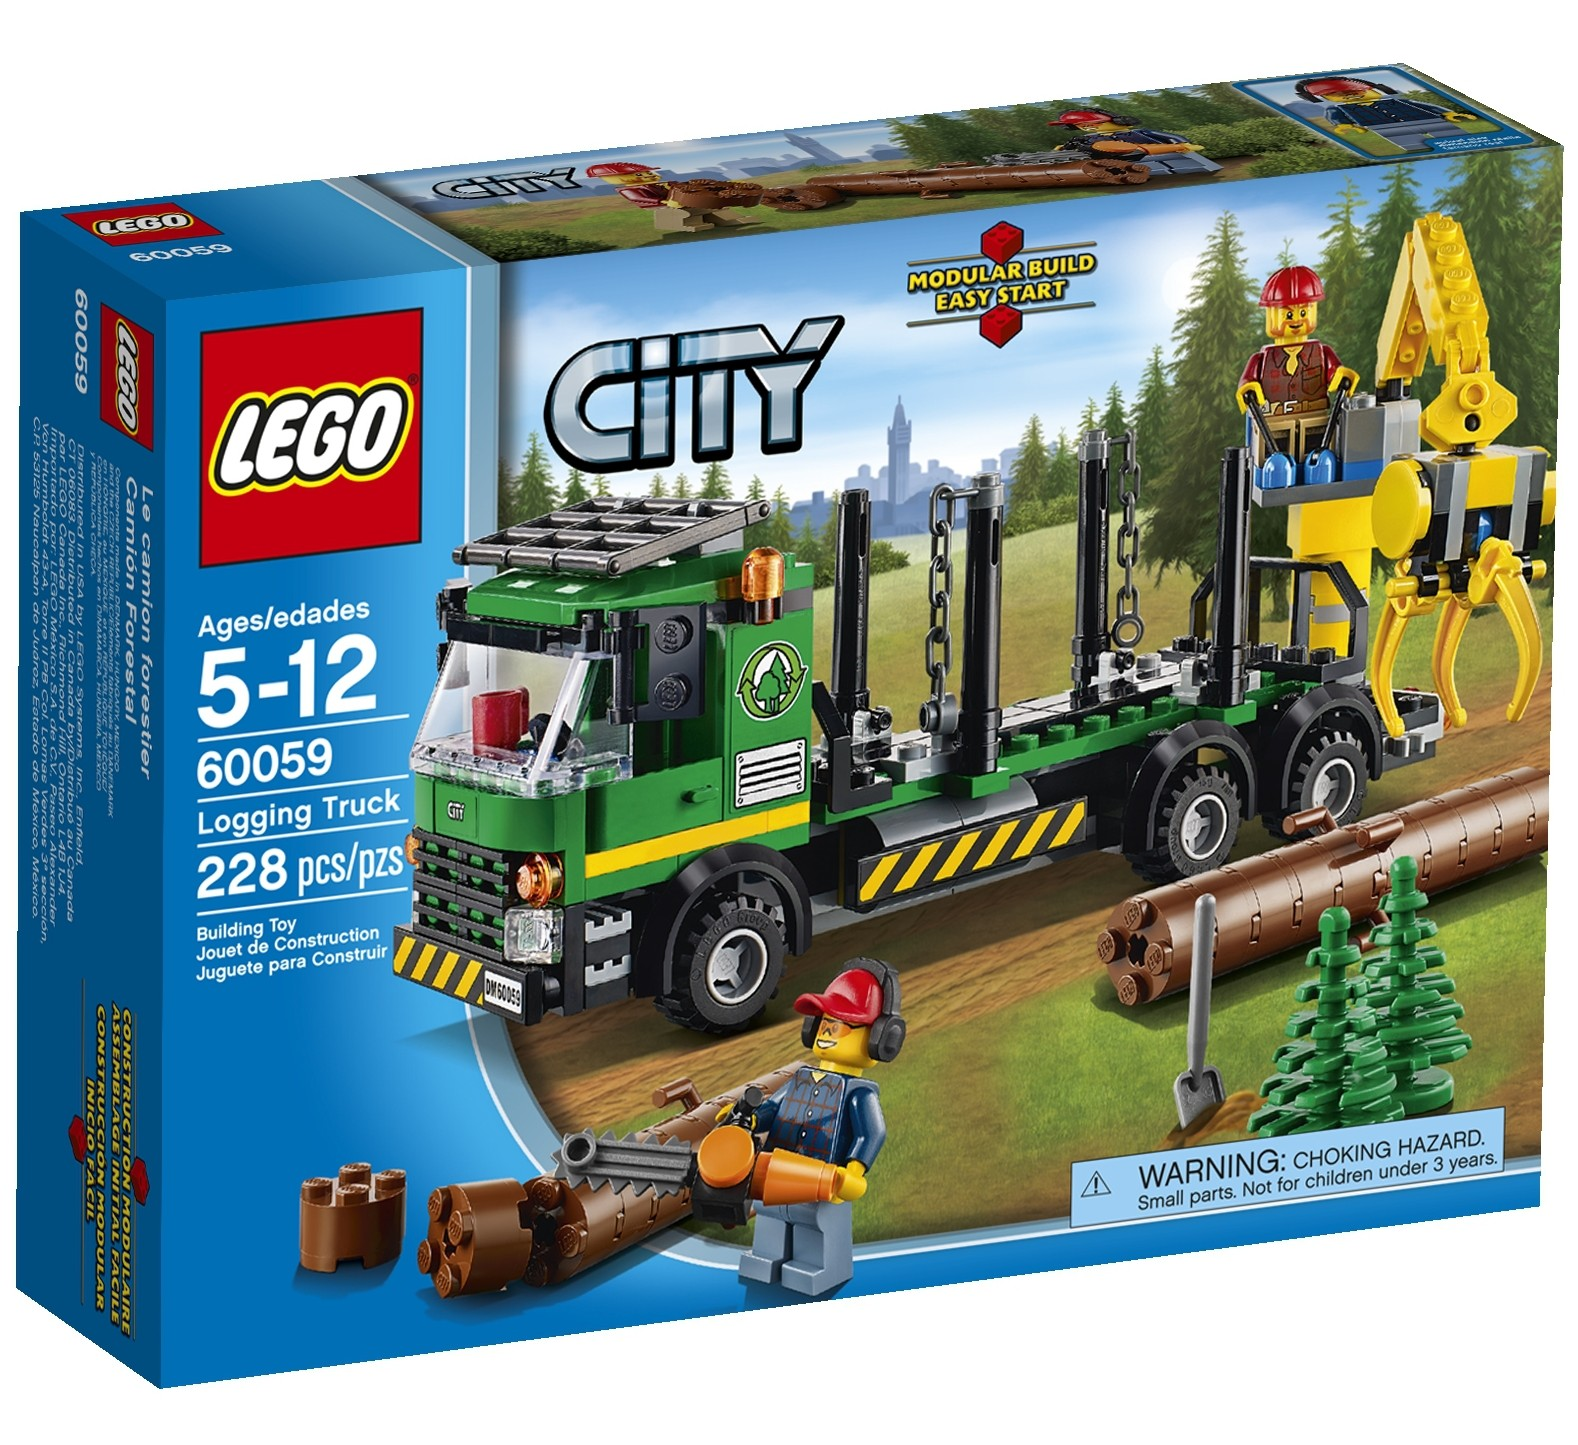 lego city logging truck 60059 winter 2014 set photos preview bricks and bloks. Black Bedroom Furniture Sets. Home Design Ideas